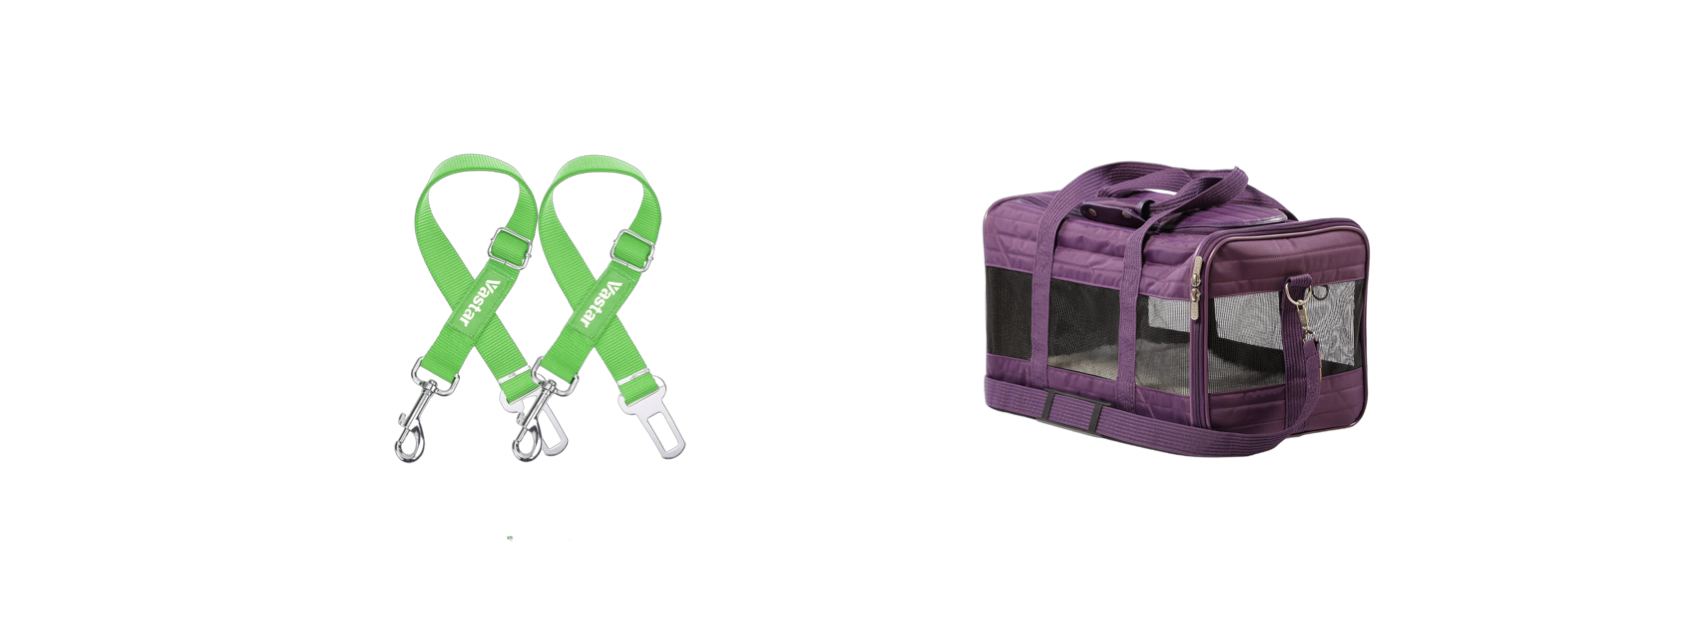 Green Dog Seat belt straps, and Purple Sherpa lined Carrier